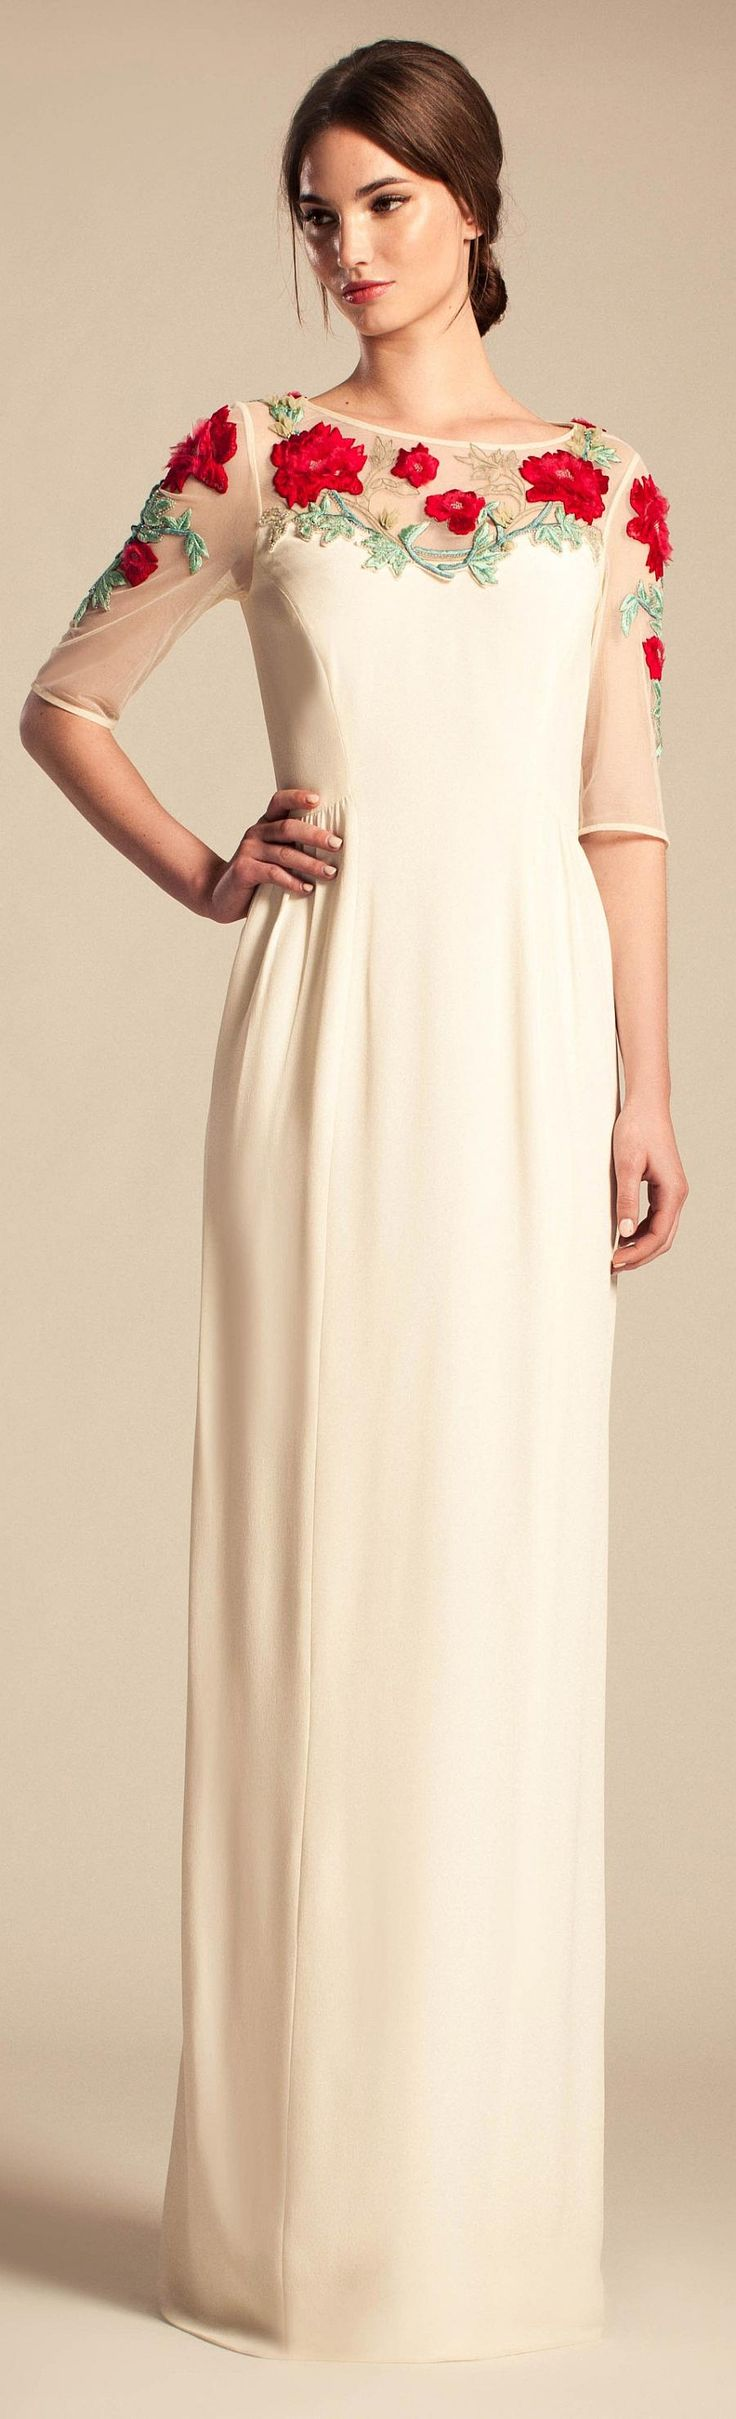 Temperley London Resort 2014. In love with this. Would totally get married in this.